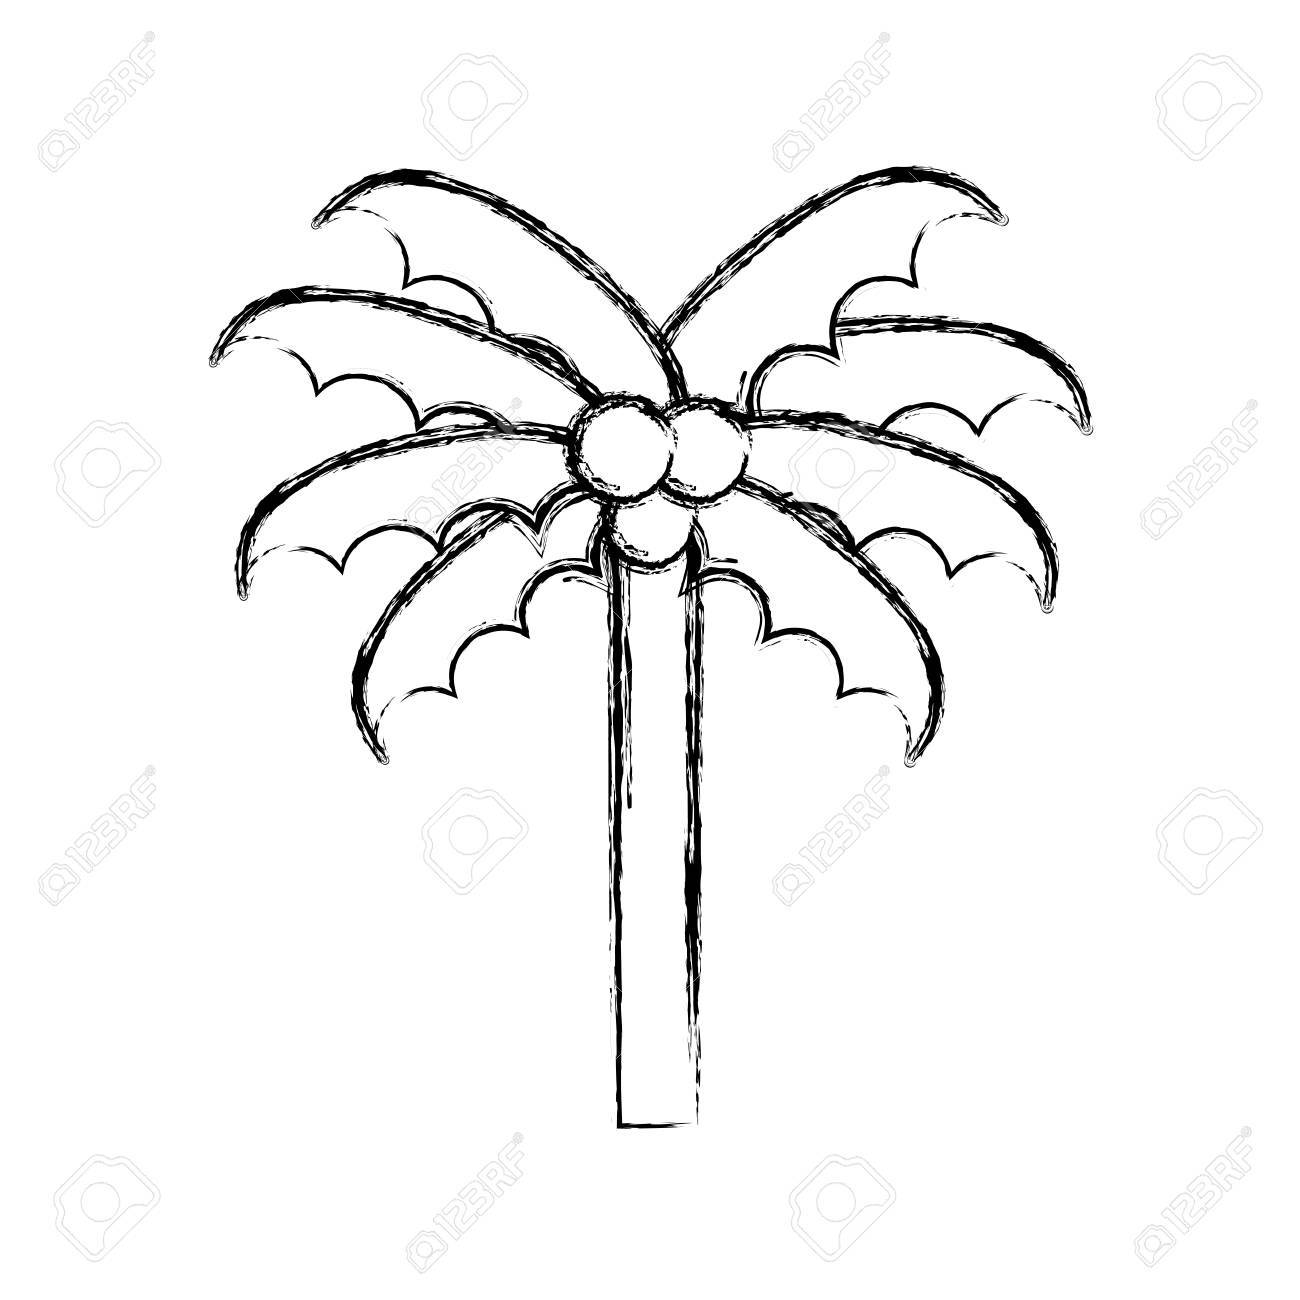 1300x1300 Sketch Draw Cute Beach Palm Cartoon Vector Graphic Design Royalty